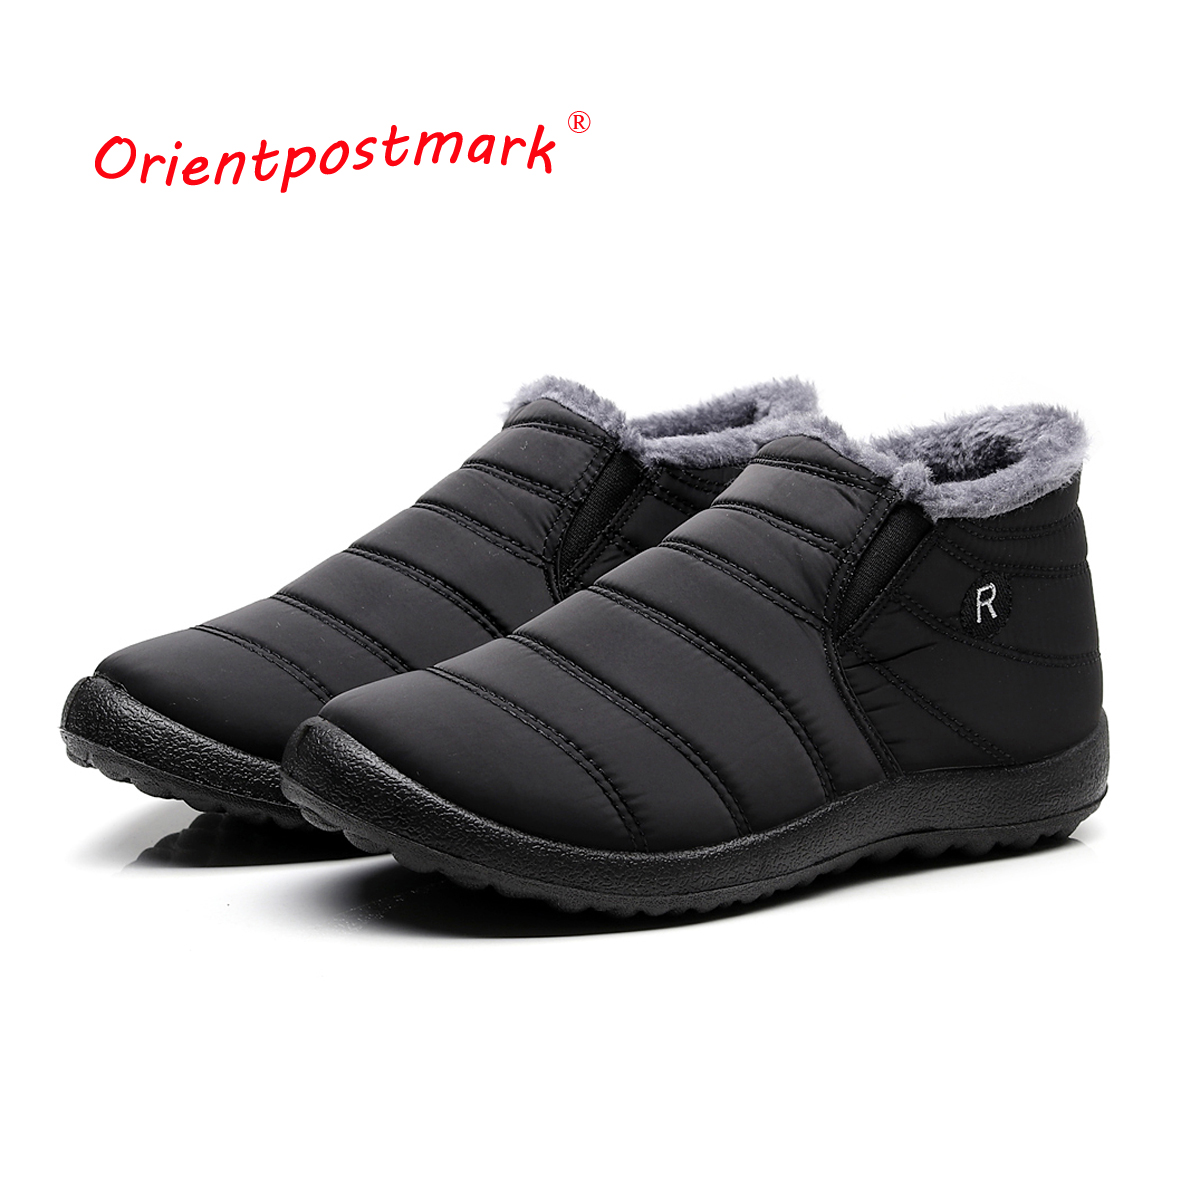 ankle-boots-winter-boots-unisex-couples-new-solid-color-men-snow-boots-plush-inside-anti-skid-bottom-warm-waterproof-ski-shoes